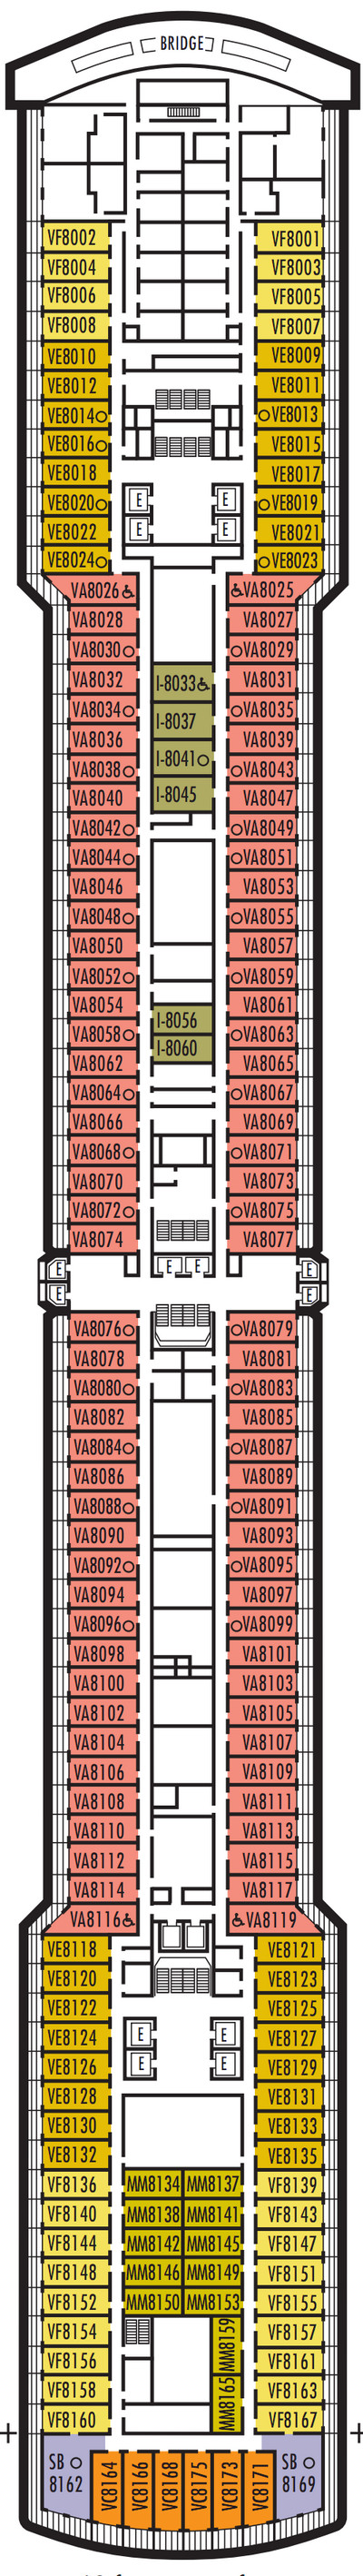 Nieuw Statendam Deck 8 - Navigation Deck layout